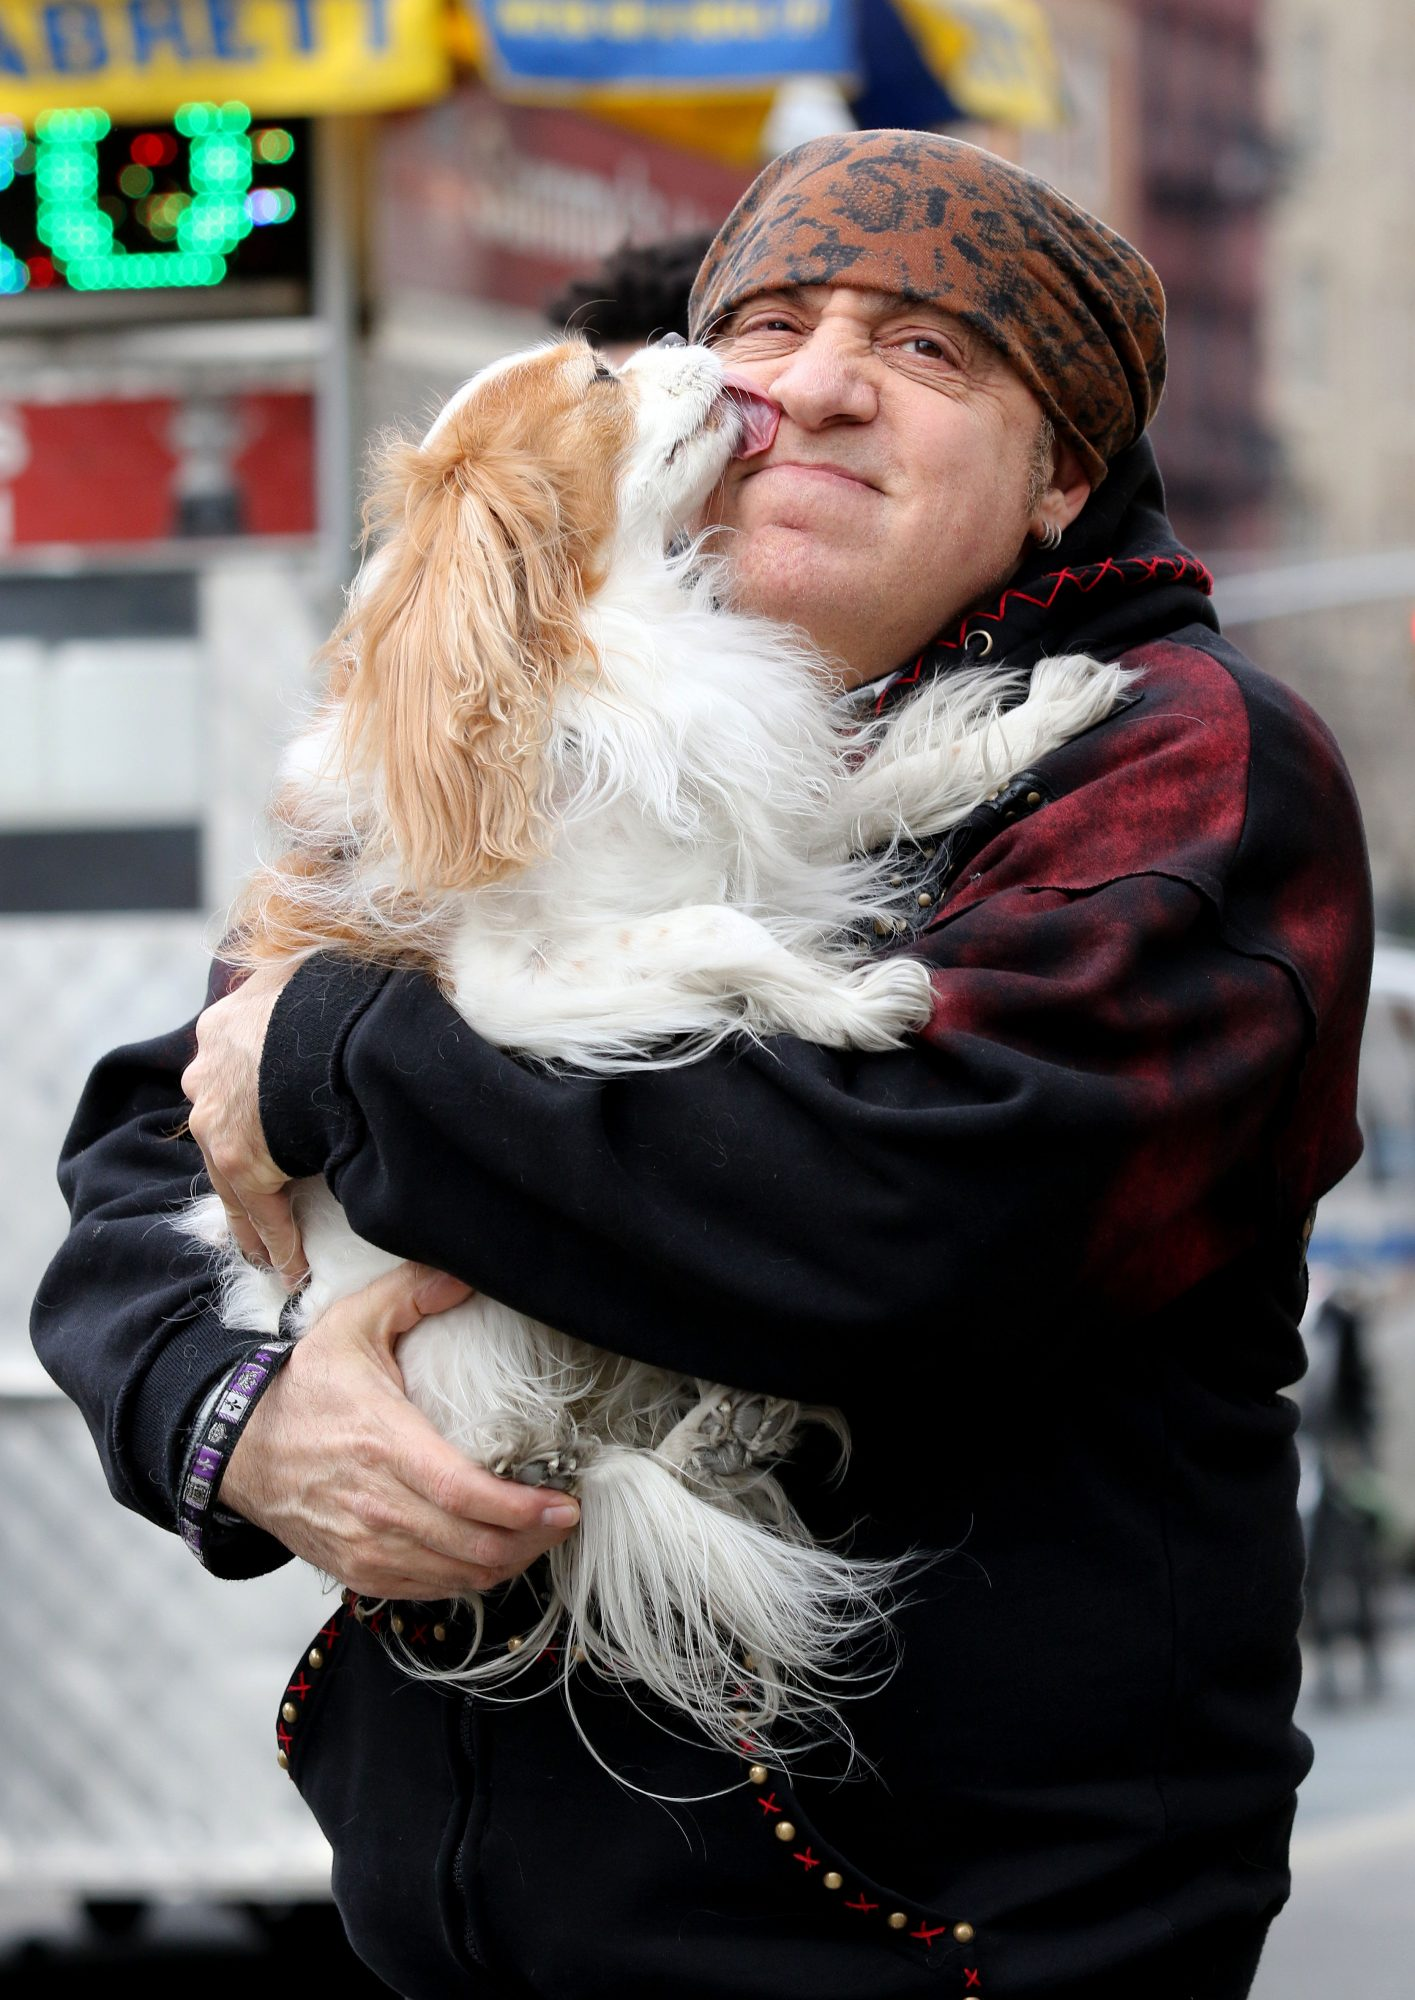 'Sopranos' Star And Musician Steven Van Zandt Gets Playful With His Dog Edie In New York City